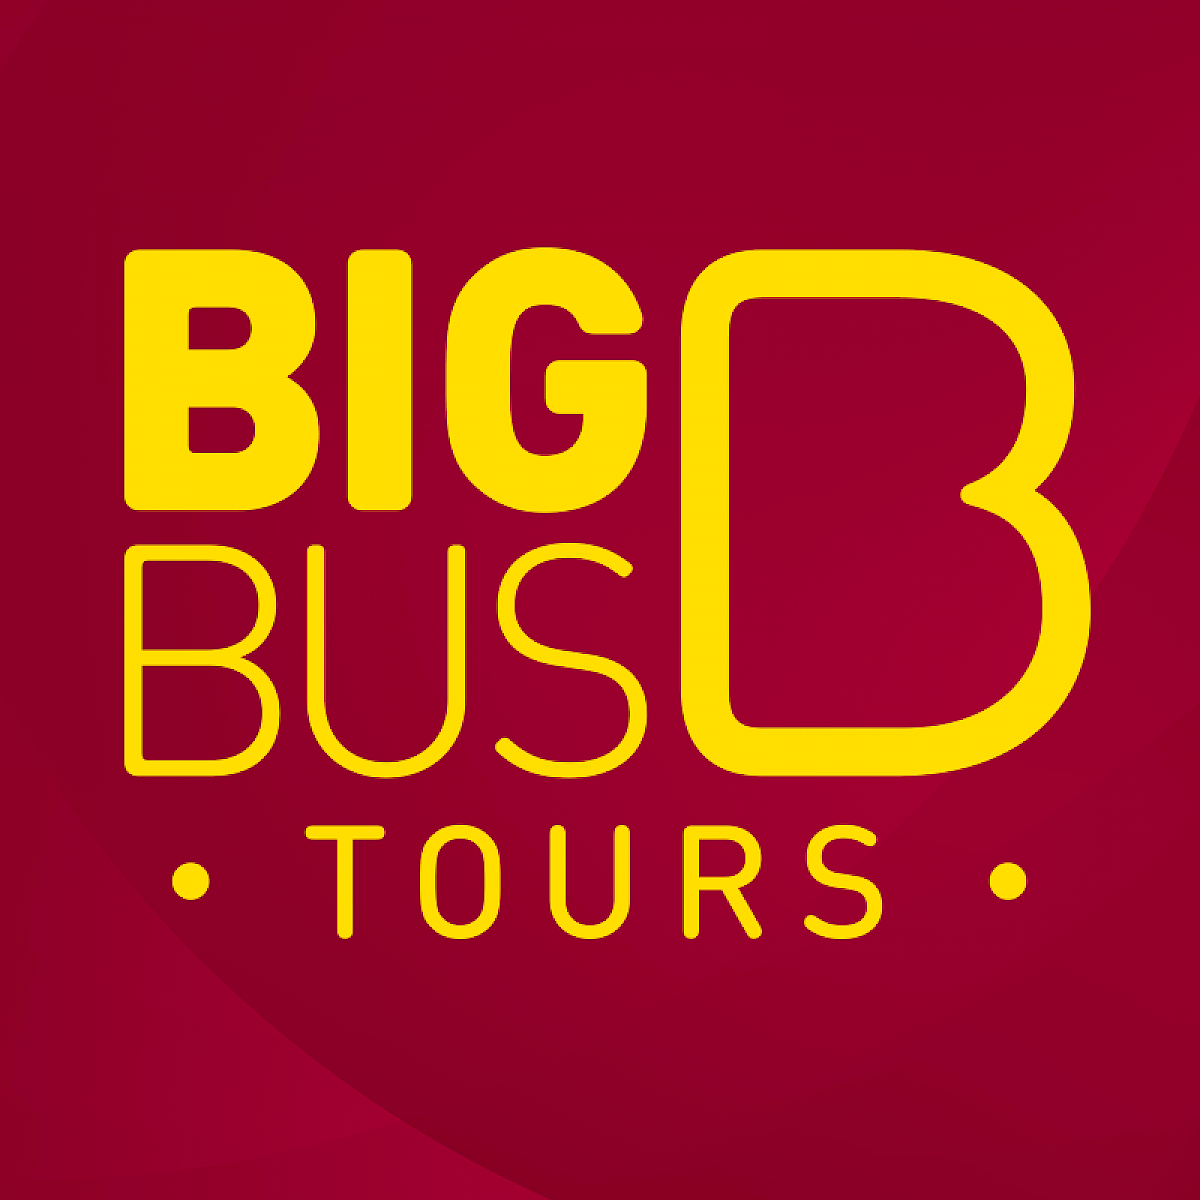 Big Bus Tours San Francisco Chartered Tours Marin Convention Visitors Bureau